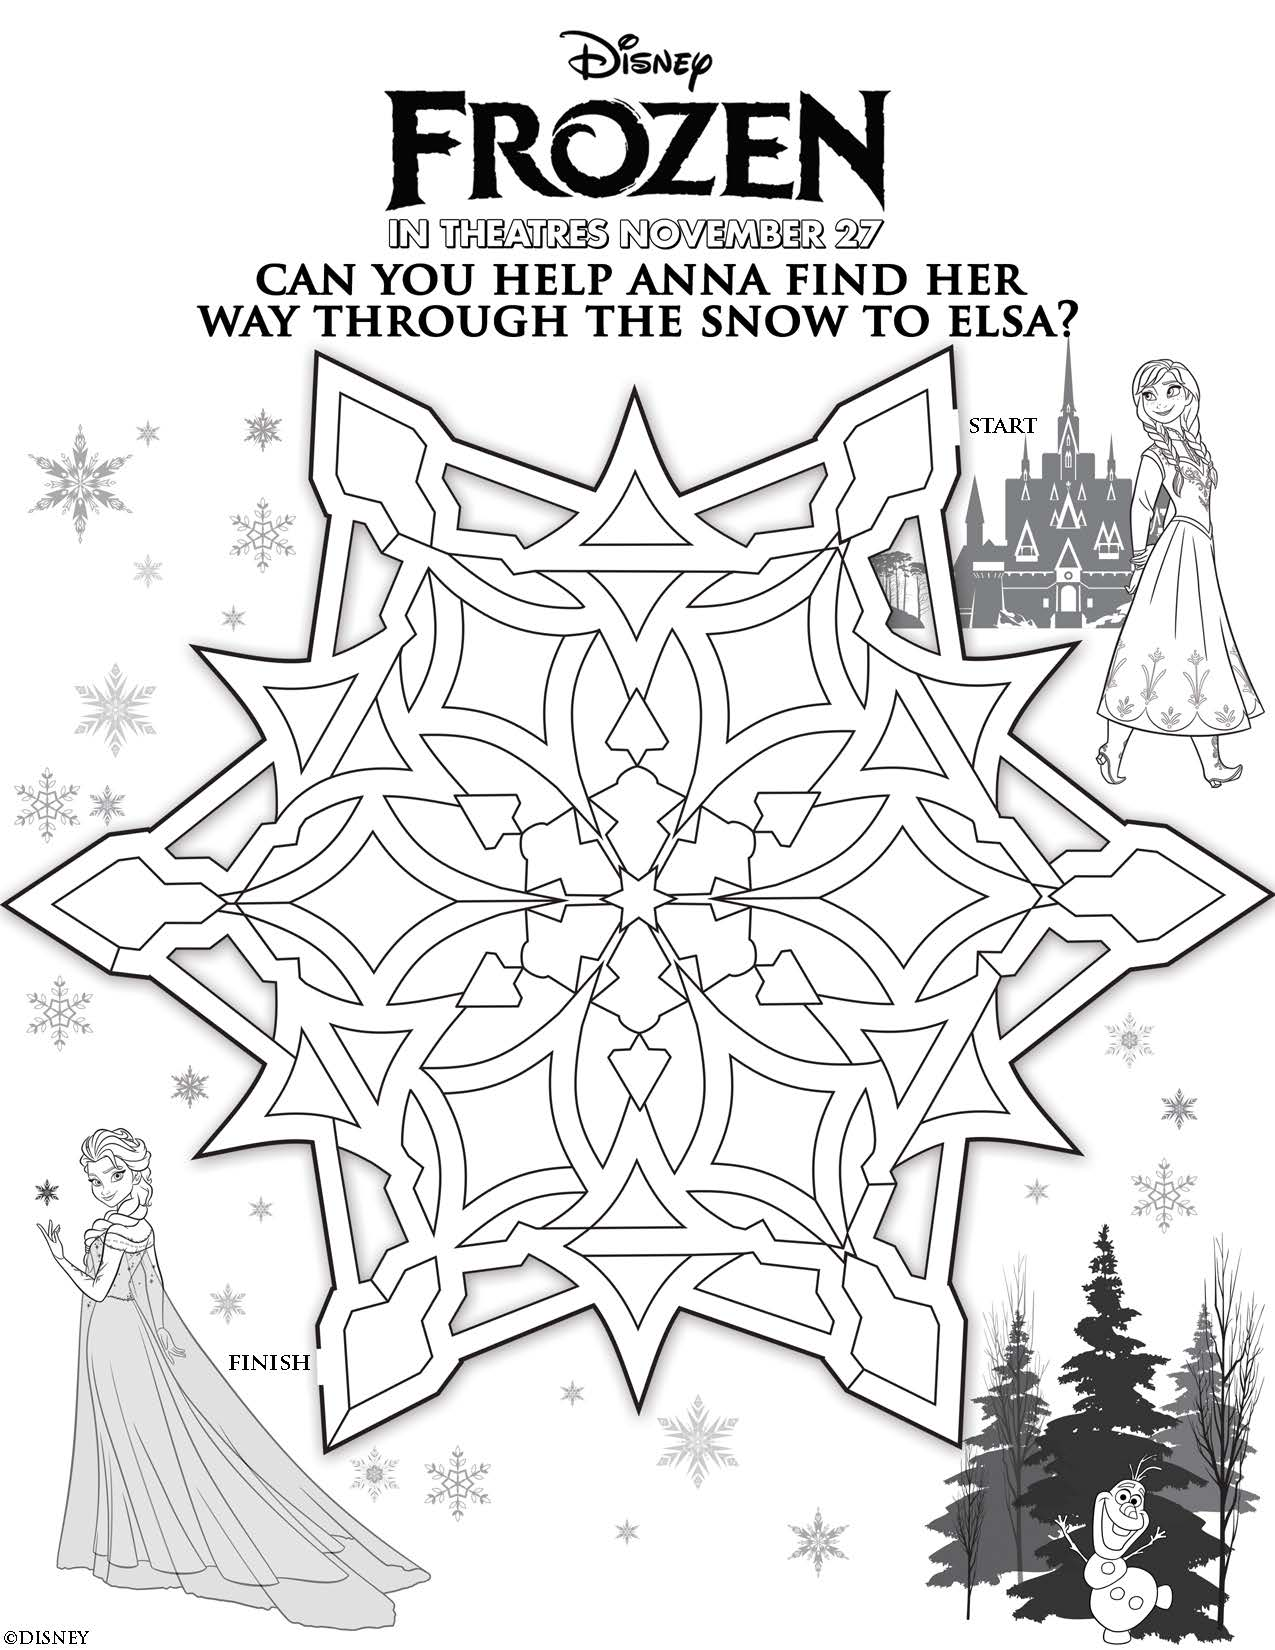 Coloring Pages Frozen Games : Disney s frozen printable activities and games for kids